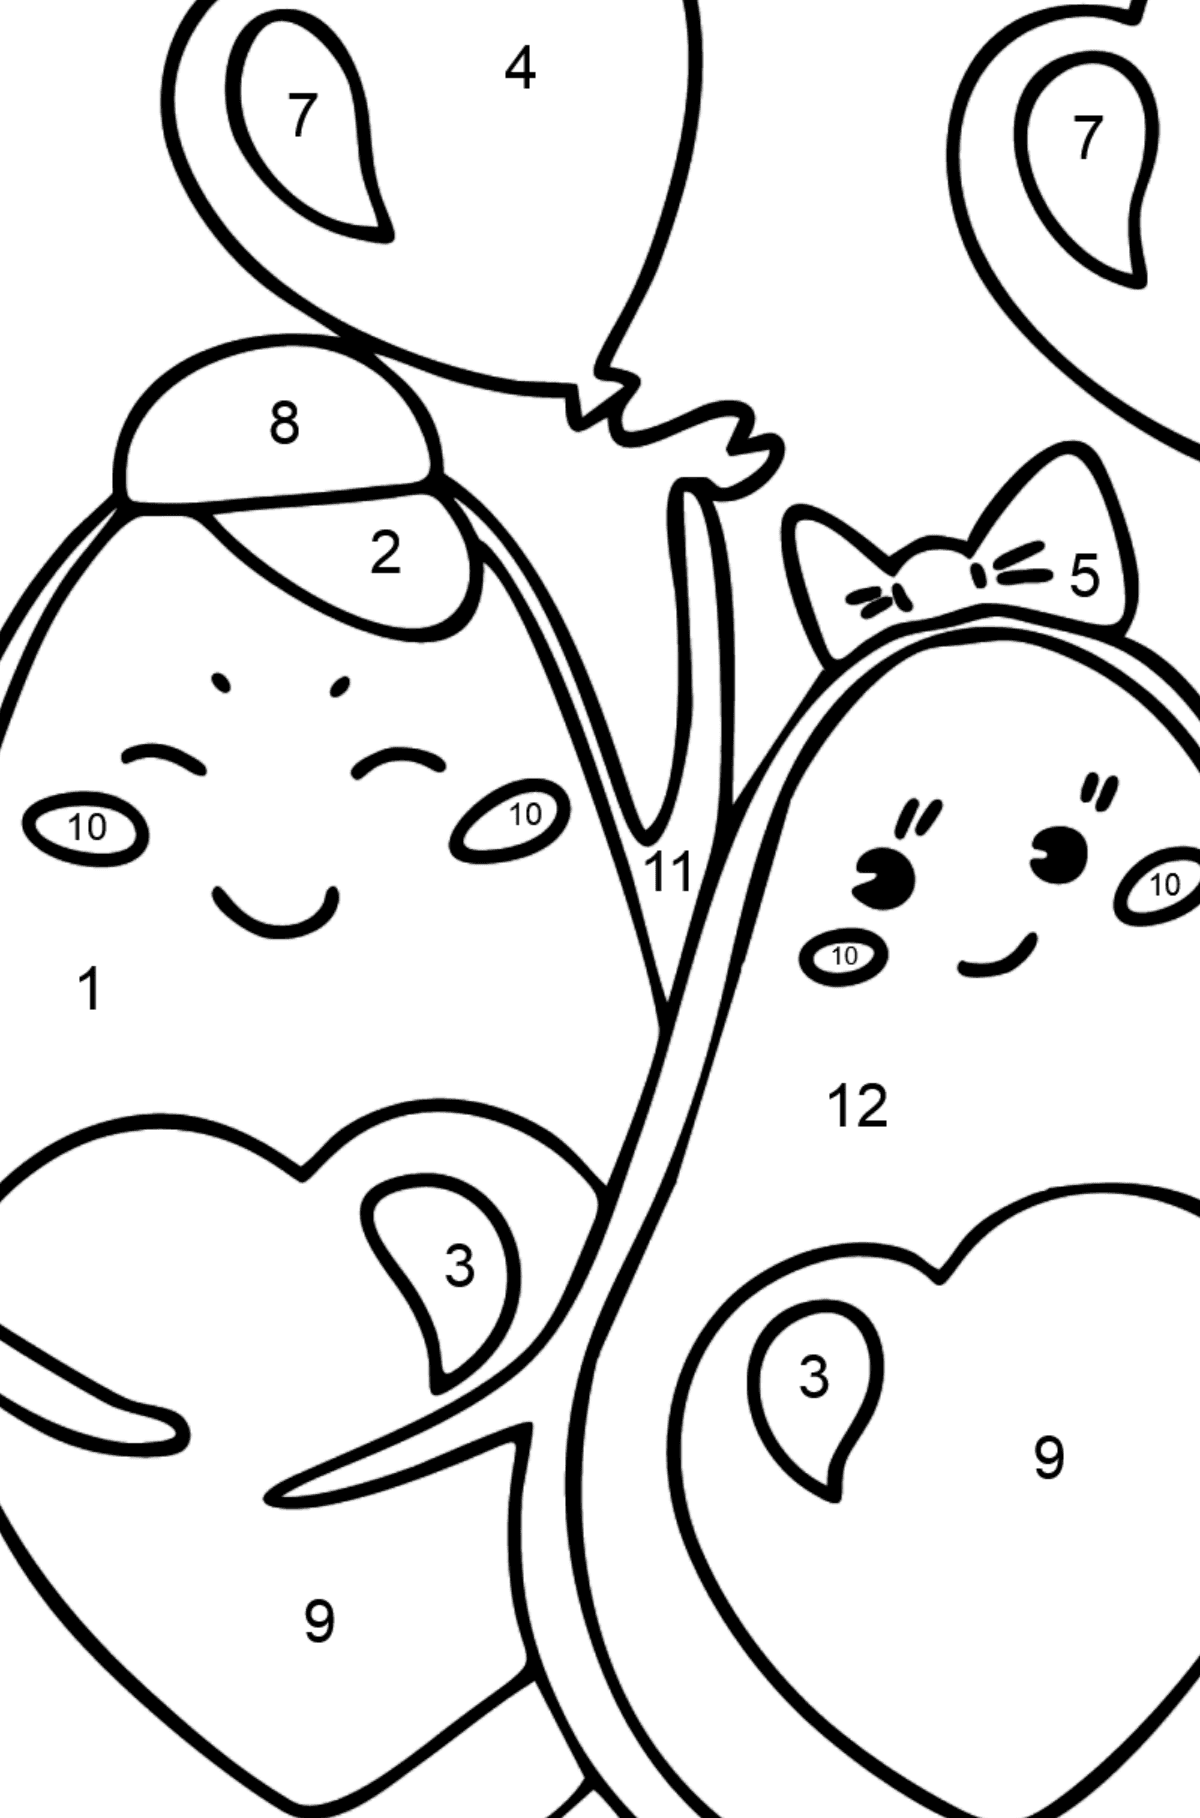 Avocado in Love coloring page - Coloring by Numbers for Kids